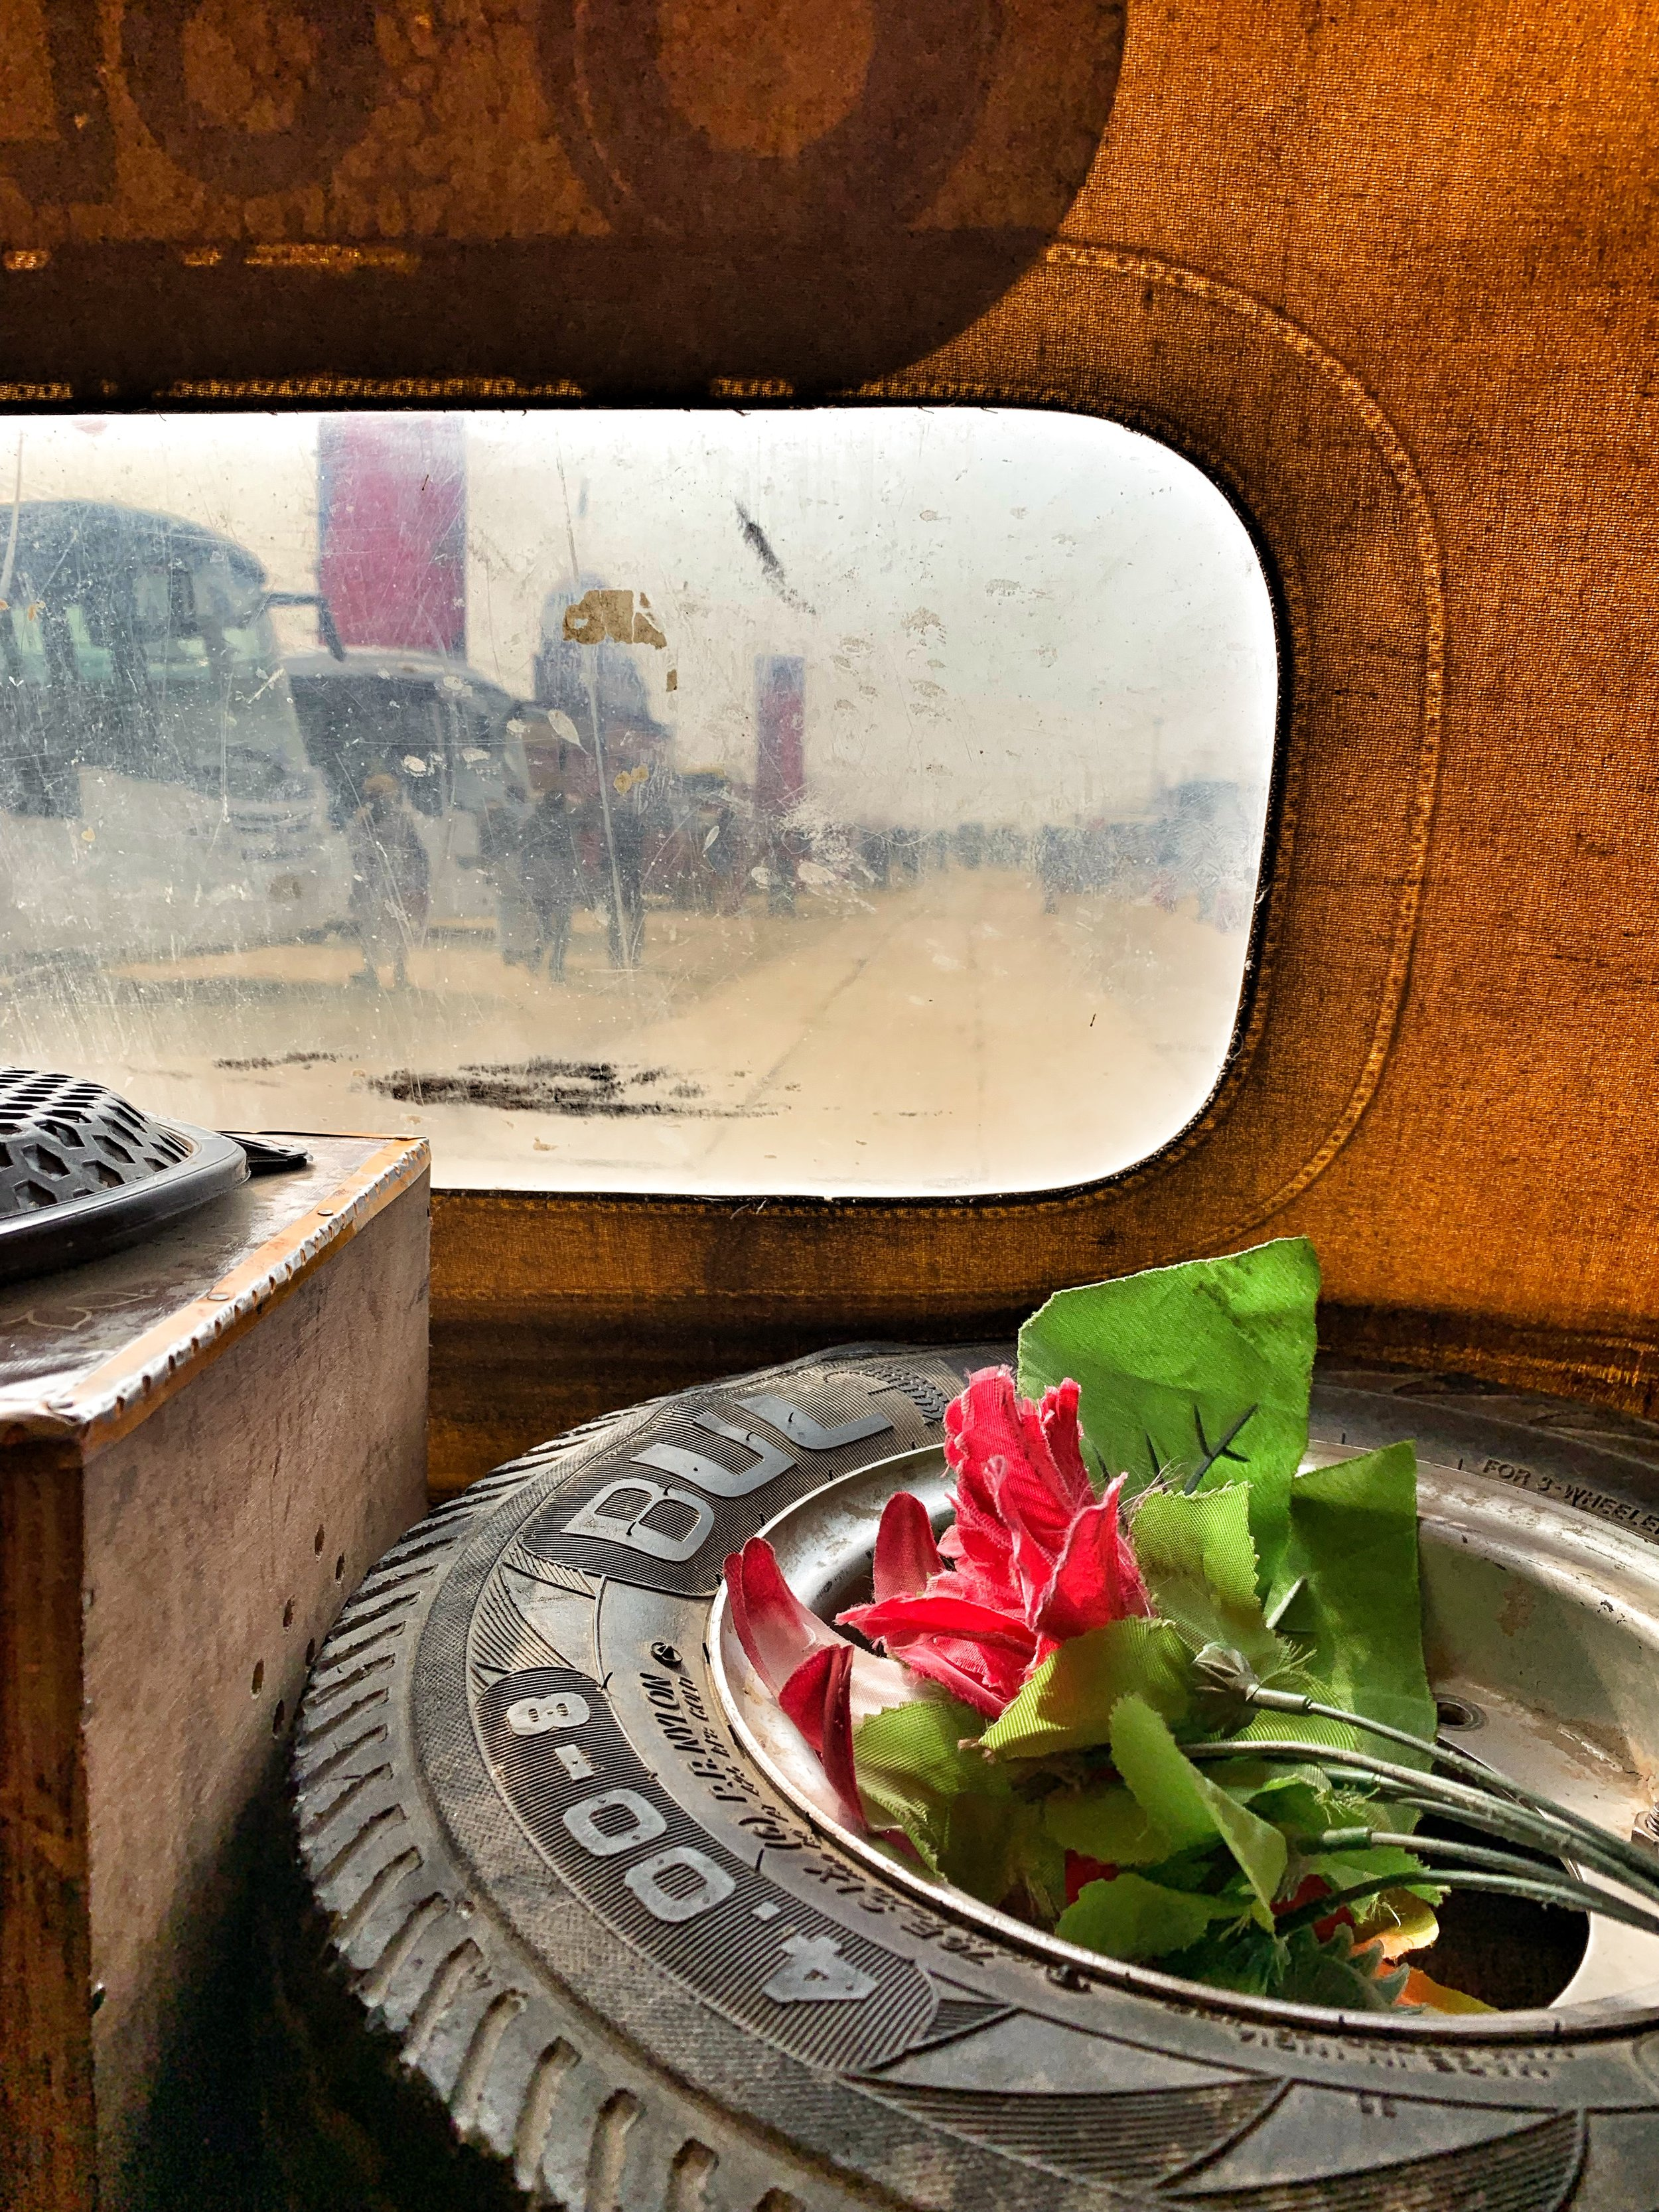 Flower perched on spare tire in the back of a tuk tuk.